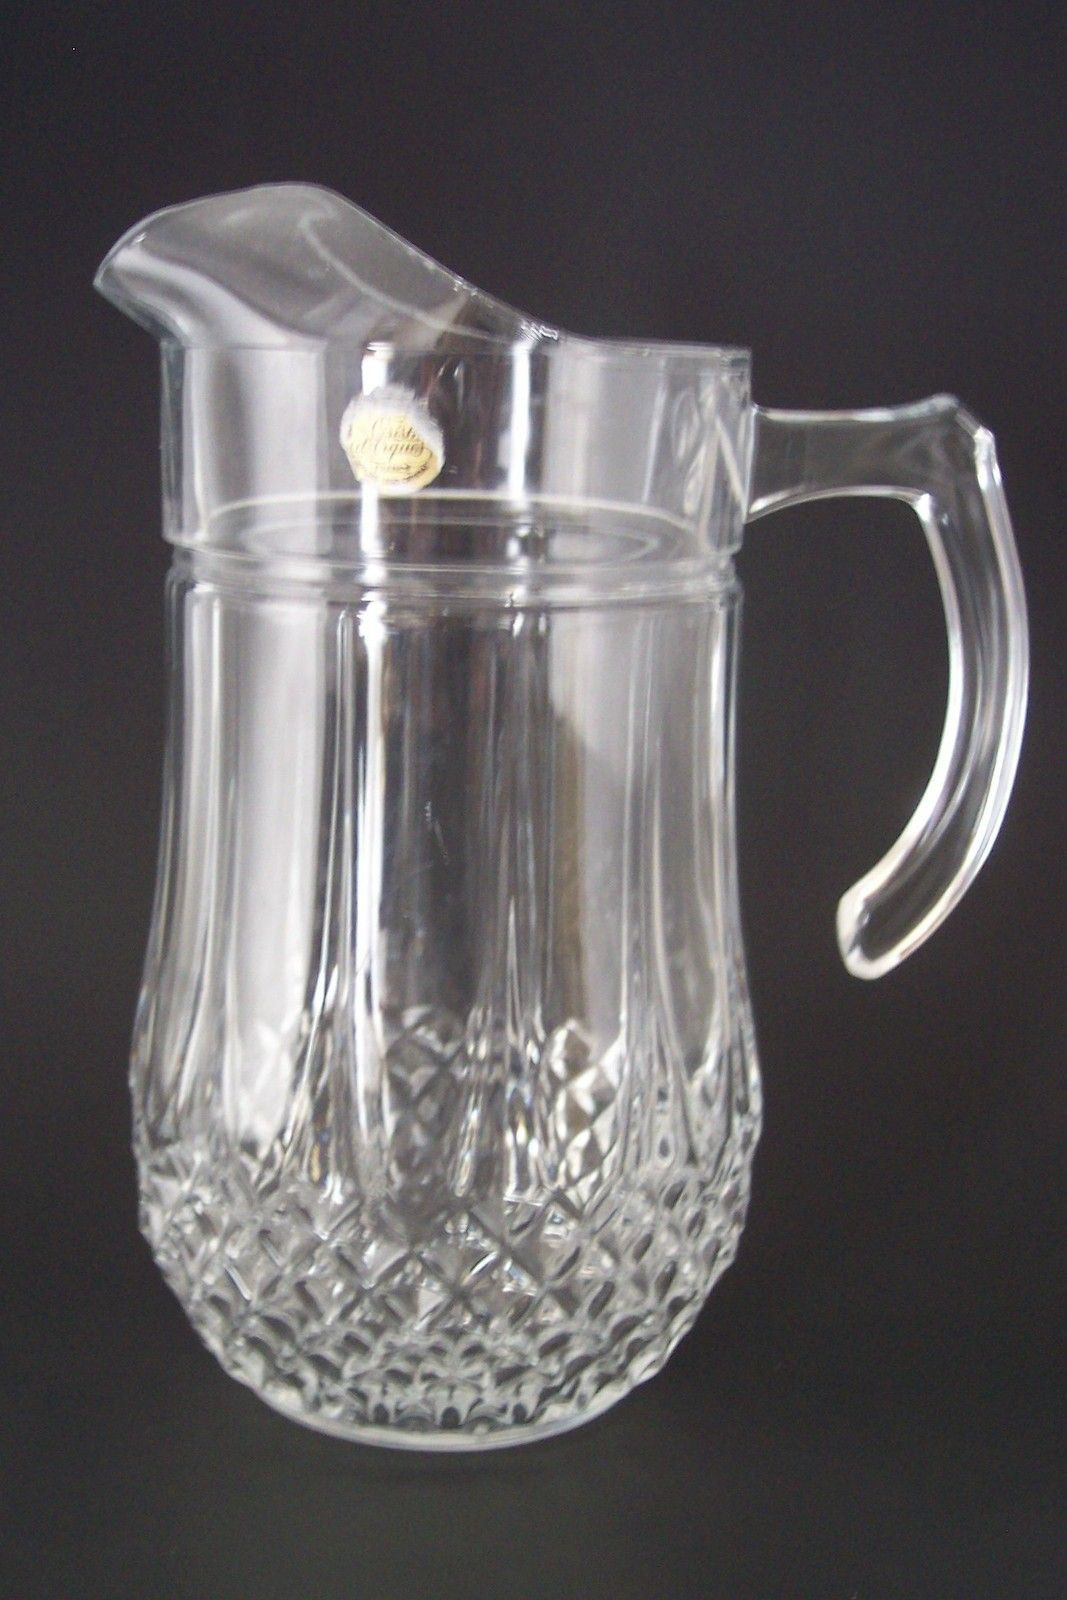 cristal d arques vase france of crystal longchamp pitcher cristal darques durand glass 24 lead regarding crystal longchamp pitcher cristal darques durand glass 24 lead crystal 50 oz 39 98 obo free shipping tracking insurance